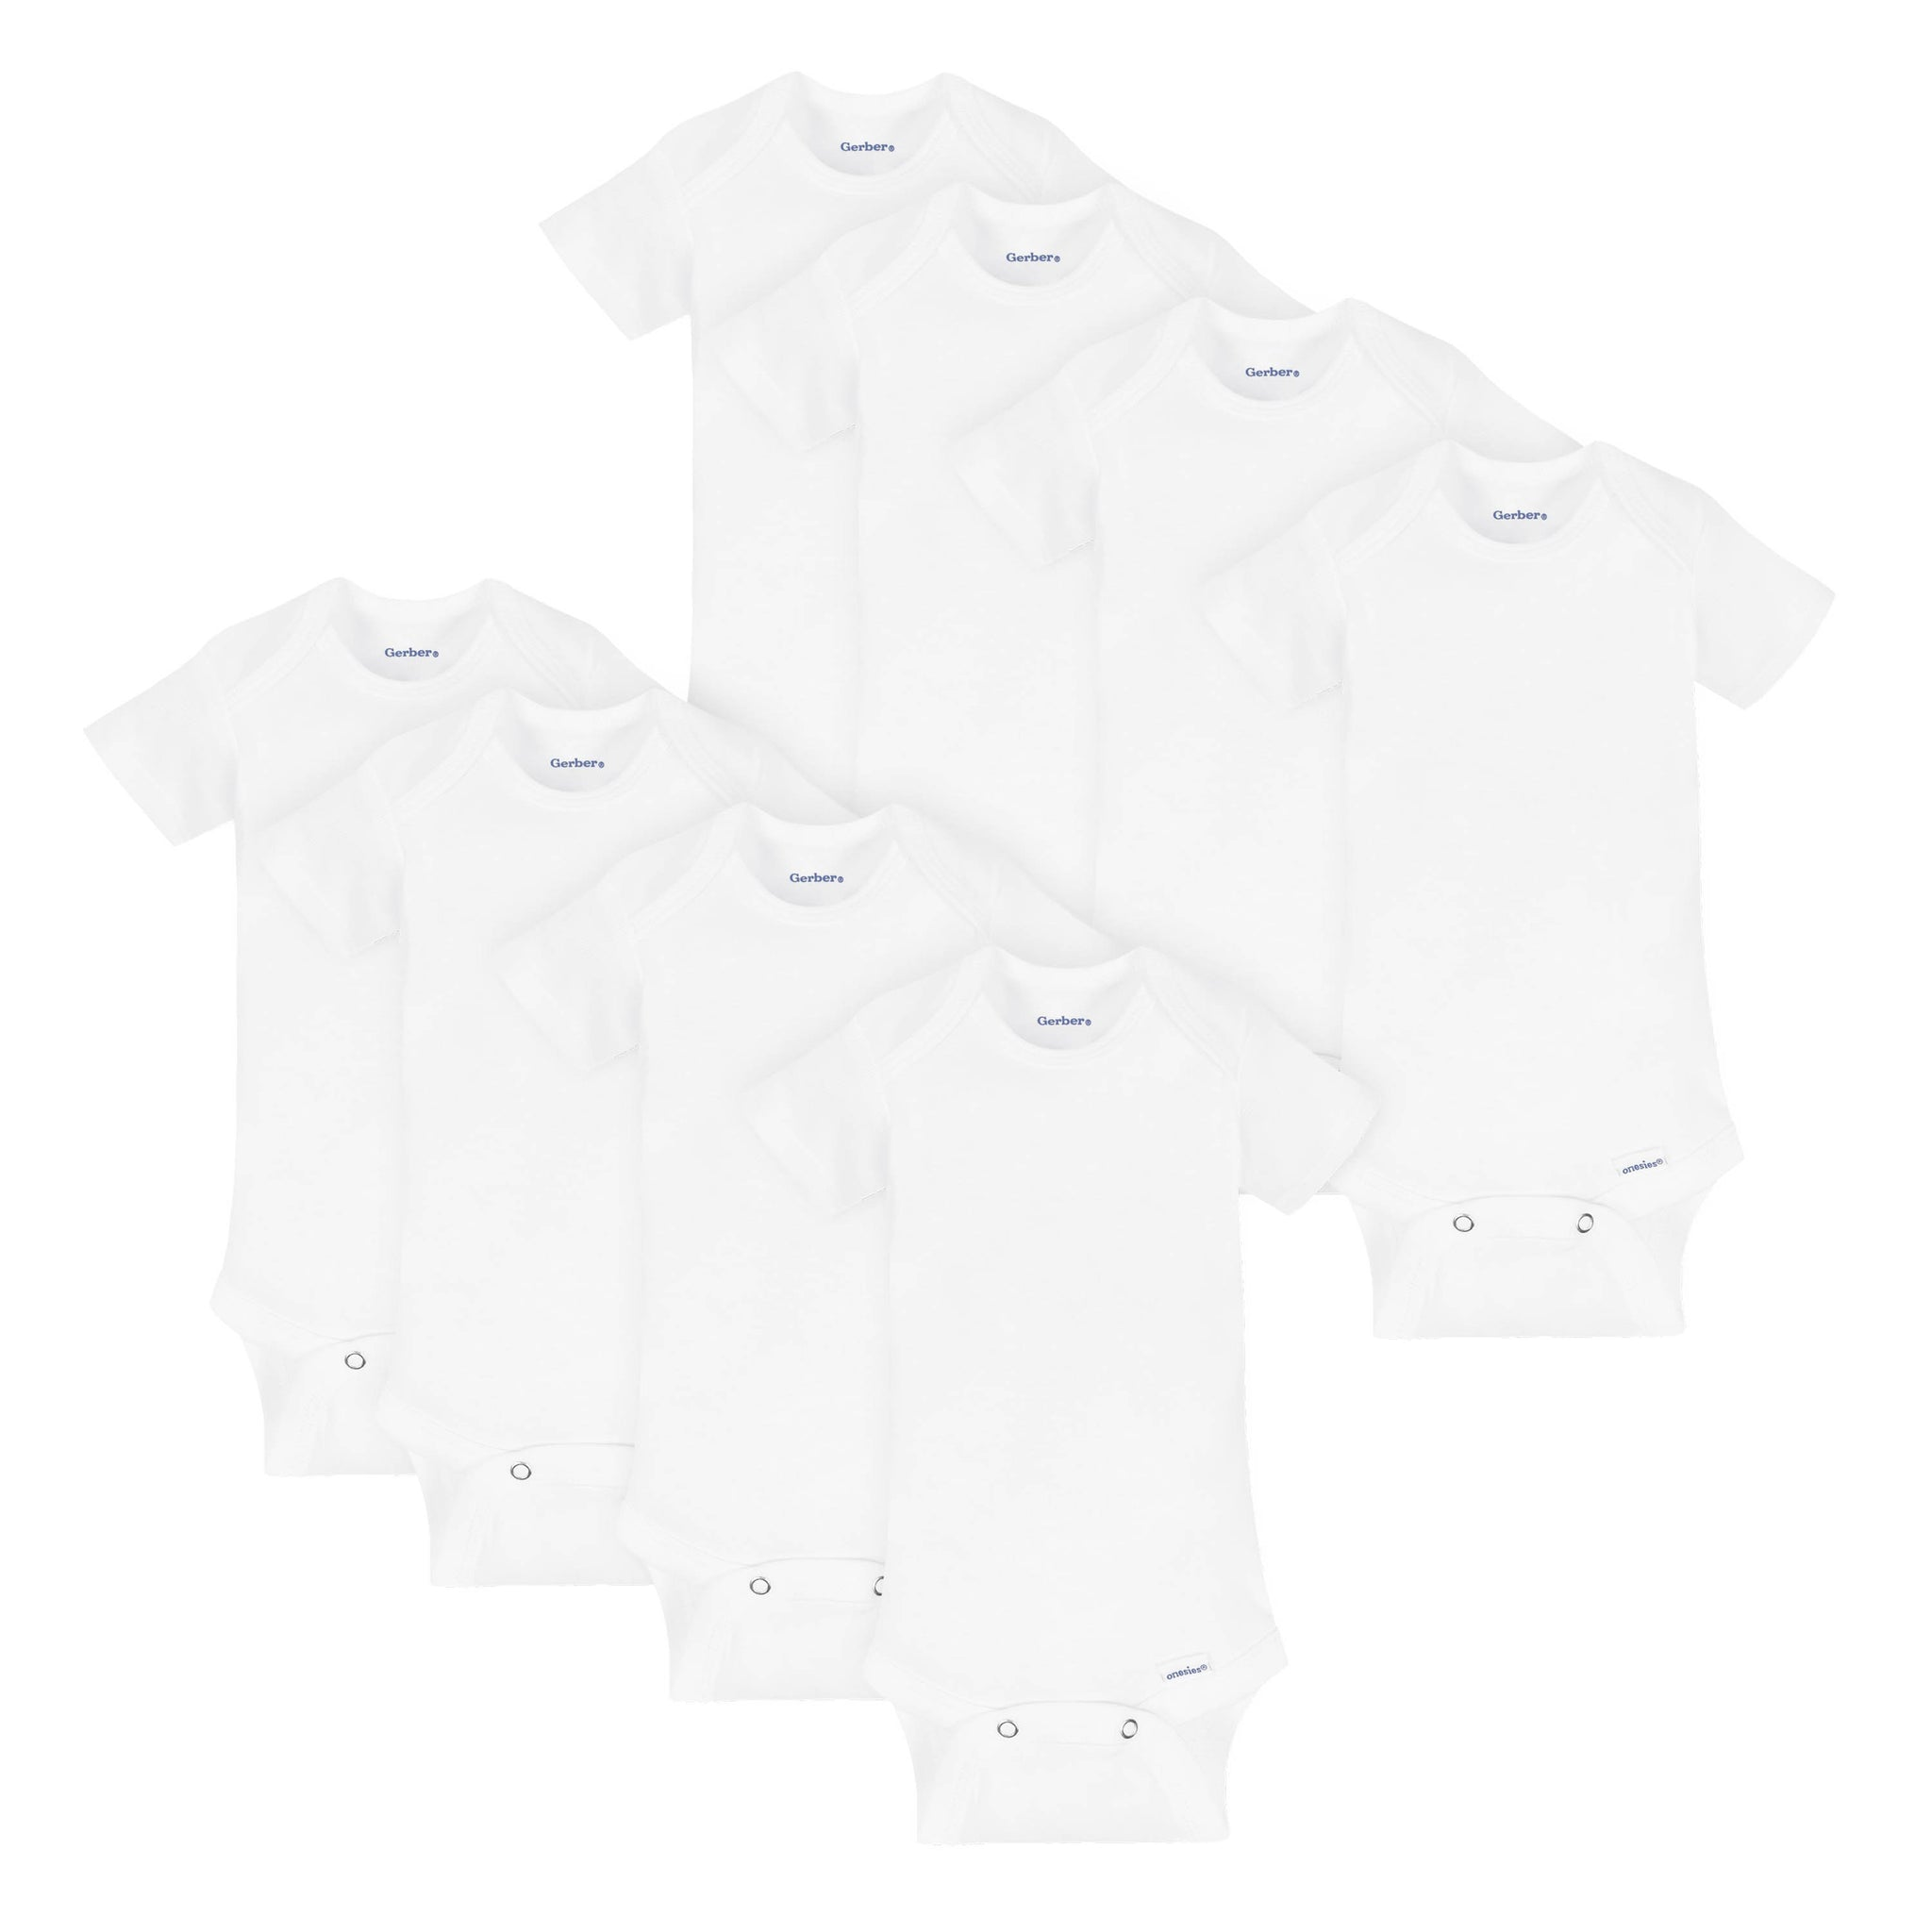 8-Pack White Short-Sleeve Onesies Bodysuits